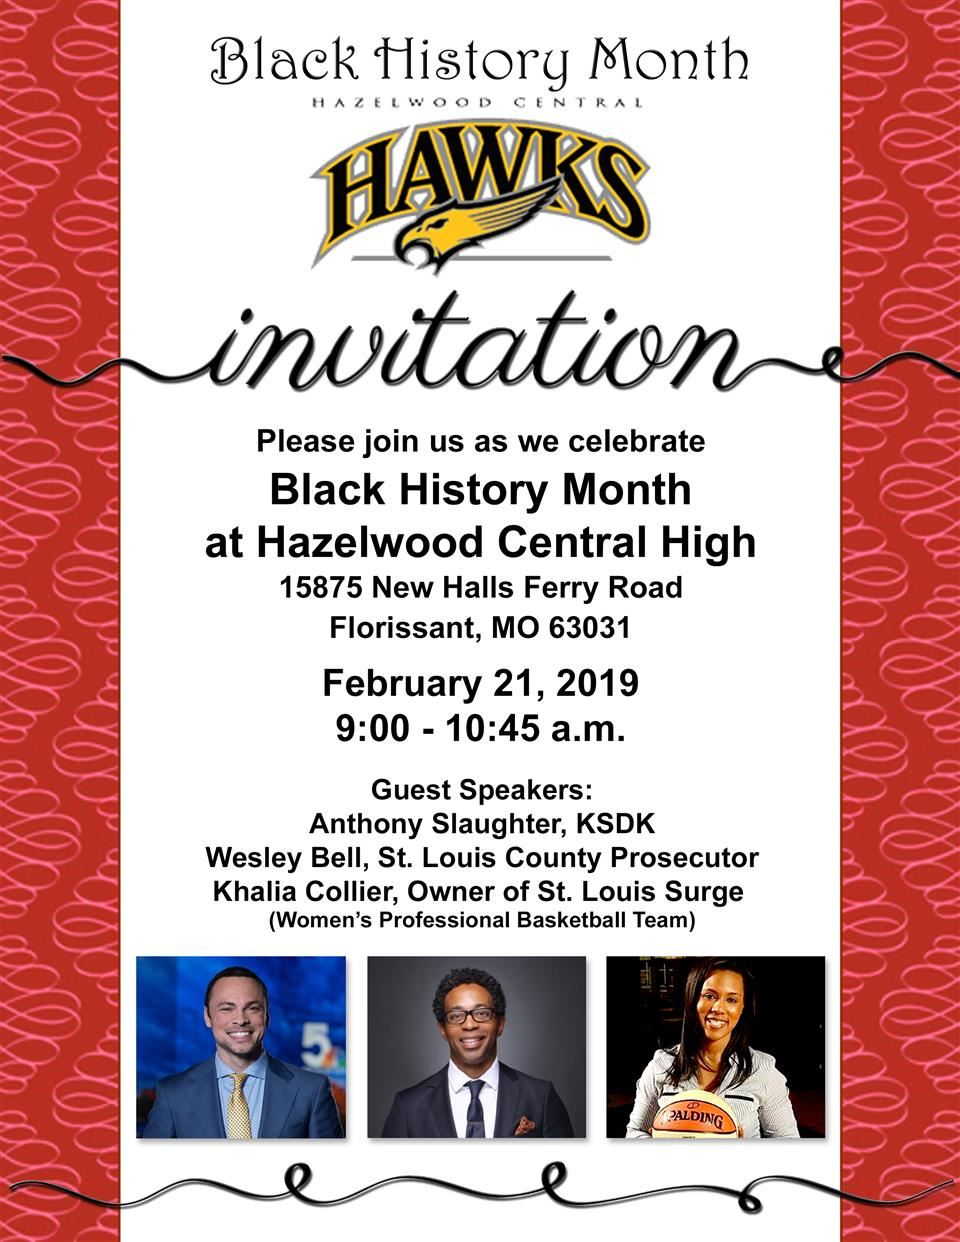 Black History Month at  Hazelwood Central High School